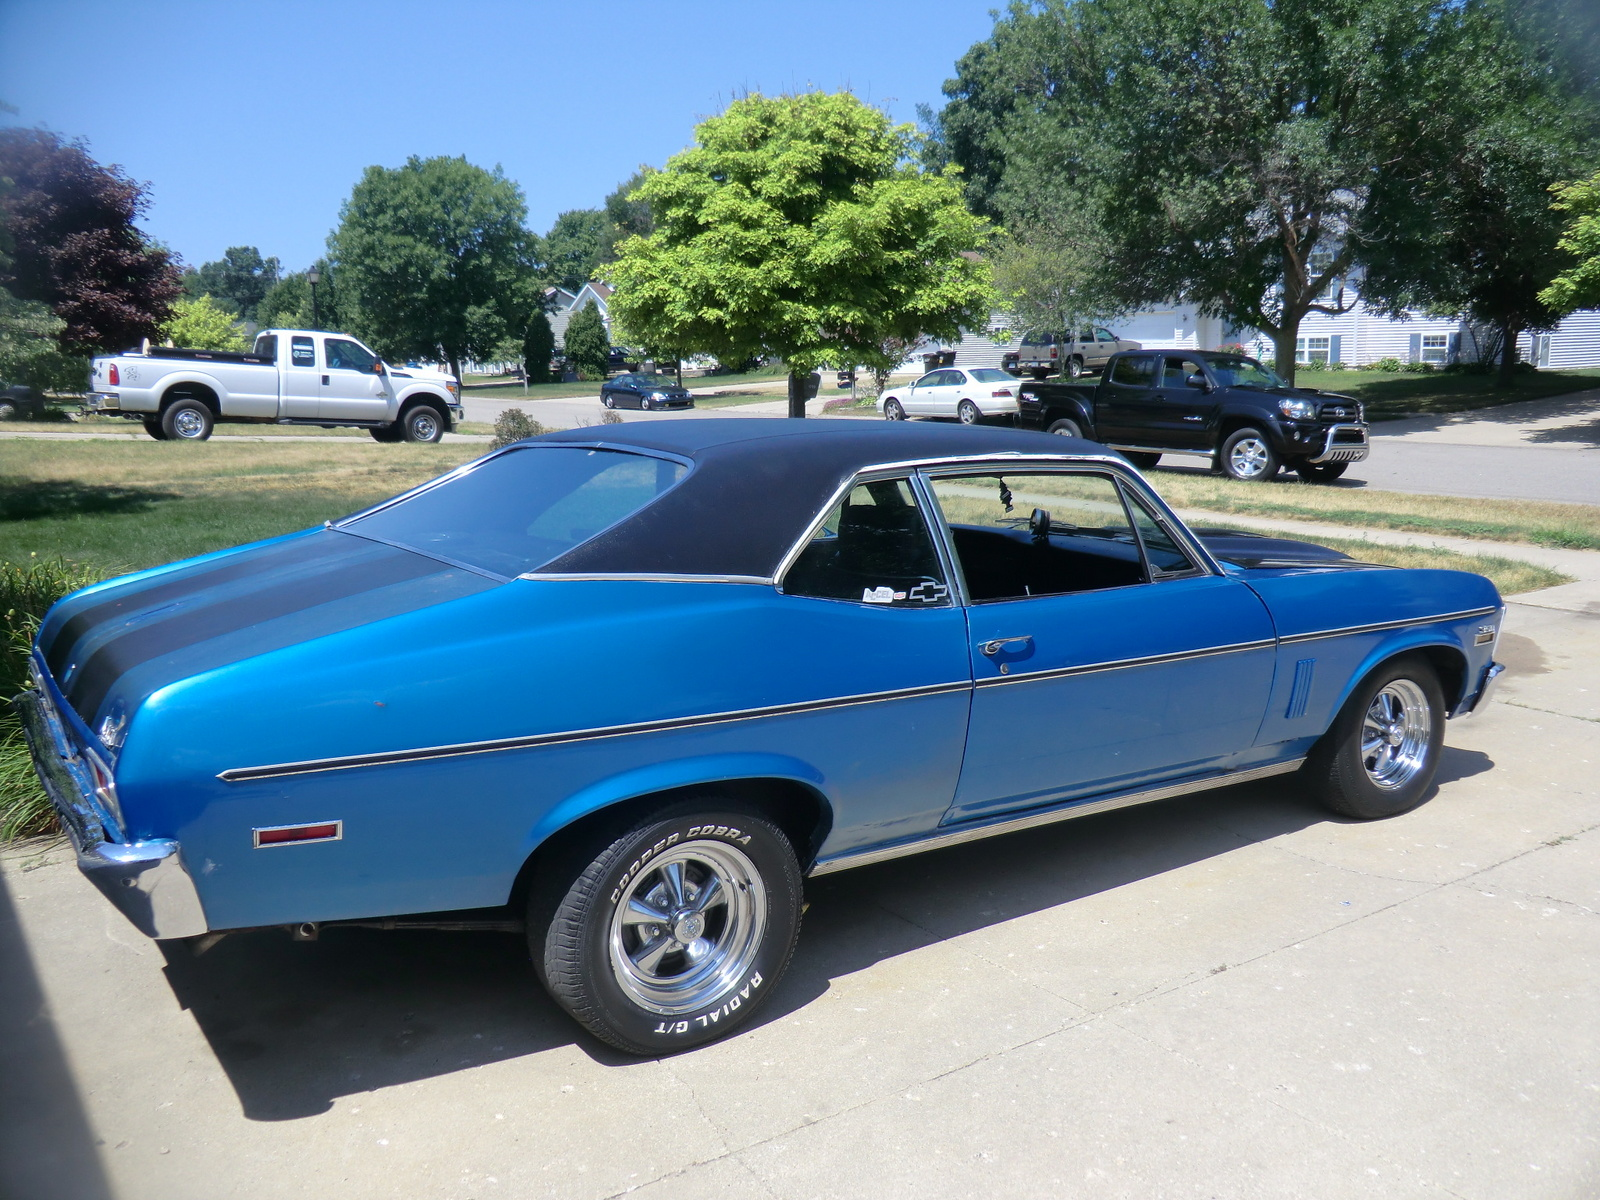 1970 Chevrolet Impala Review in addition 1979 Chevelle Malibu together with 1974 Chevrolet Laguna likewise S  chevrolet Malibu Ss 2 Door Coupe 1965 furthermore 1976 Chevy Laguna S3 For Sale CZ9 7Cm5aq3Nz0QjxI 7CpnfqV9fdapKhFu77K0Zrt710gM. on 1975 chevrolet chevelle malibu ss